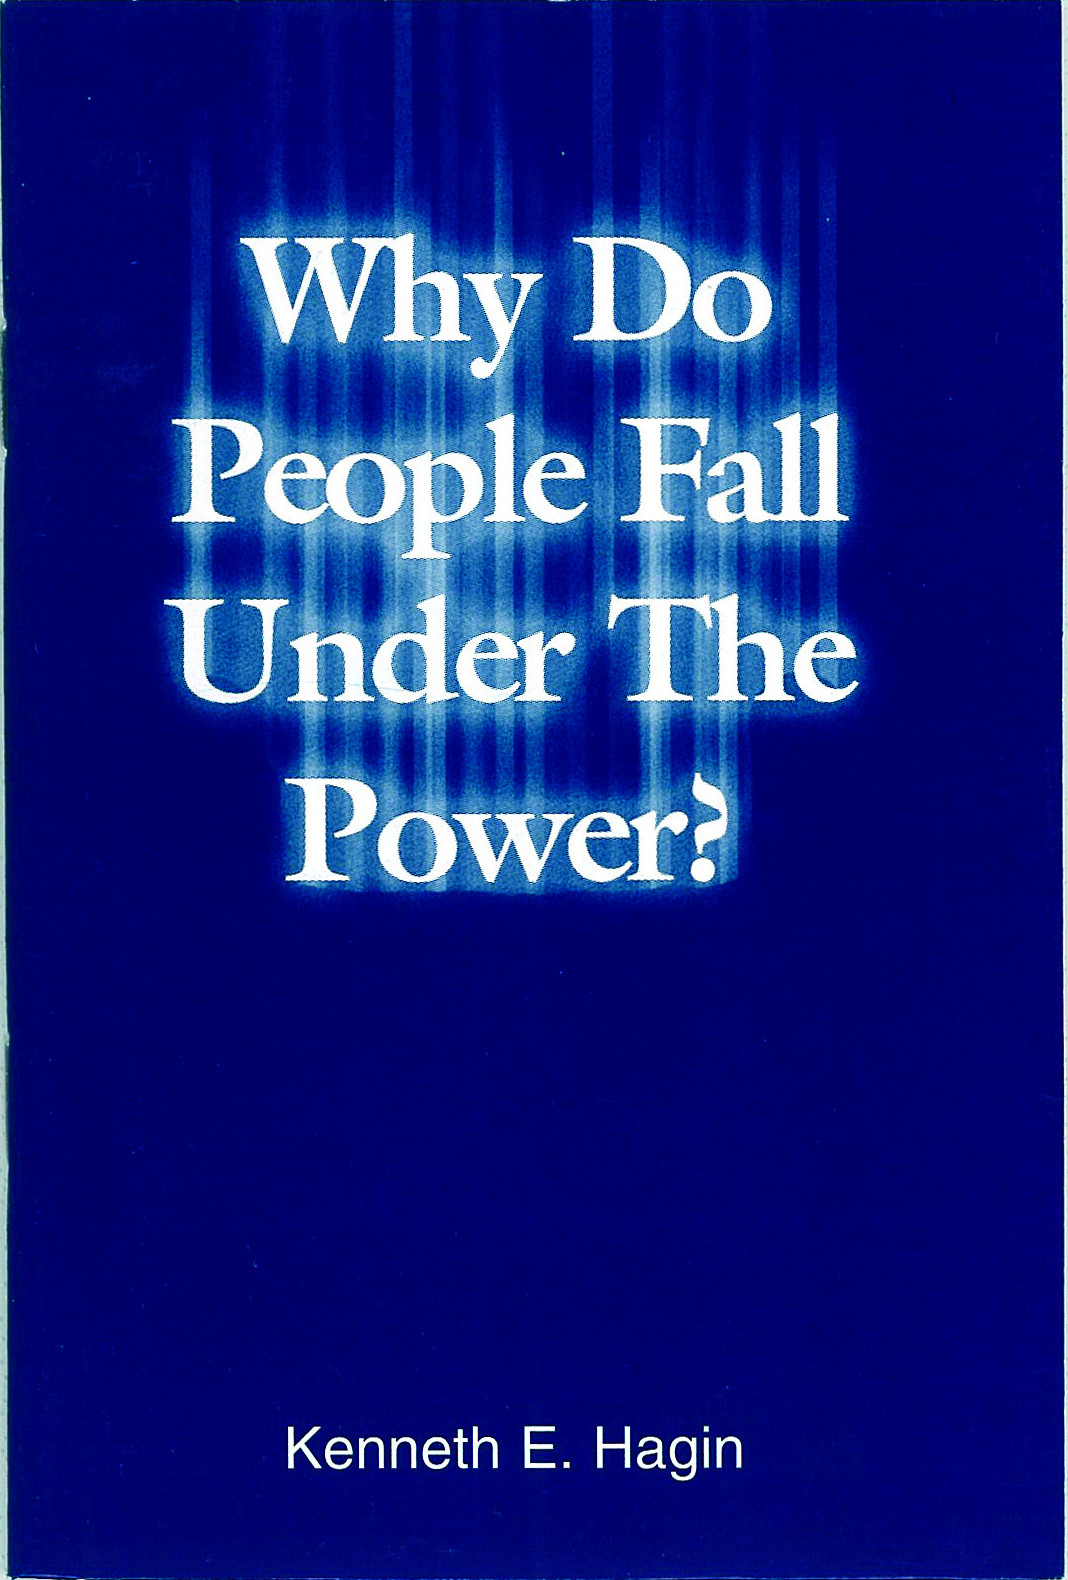 Why Do People Fall Under The Power (Book)